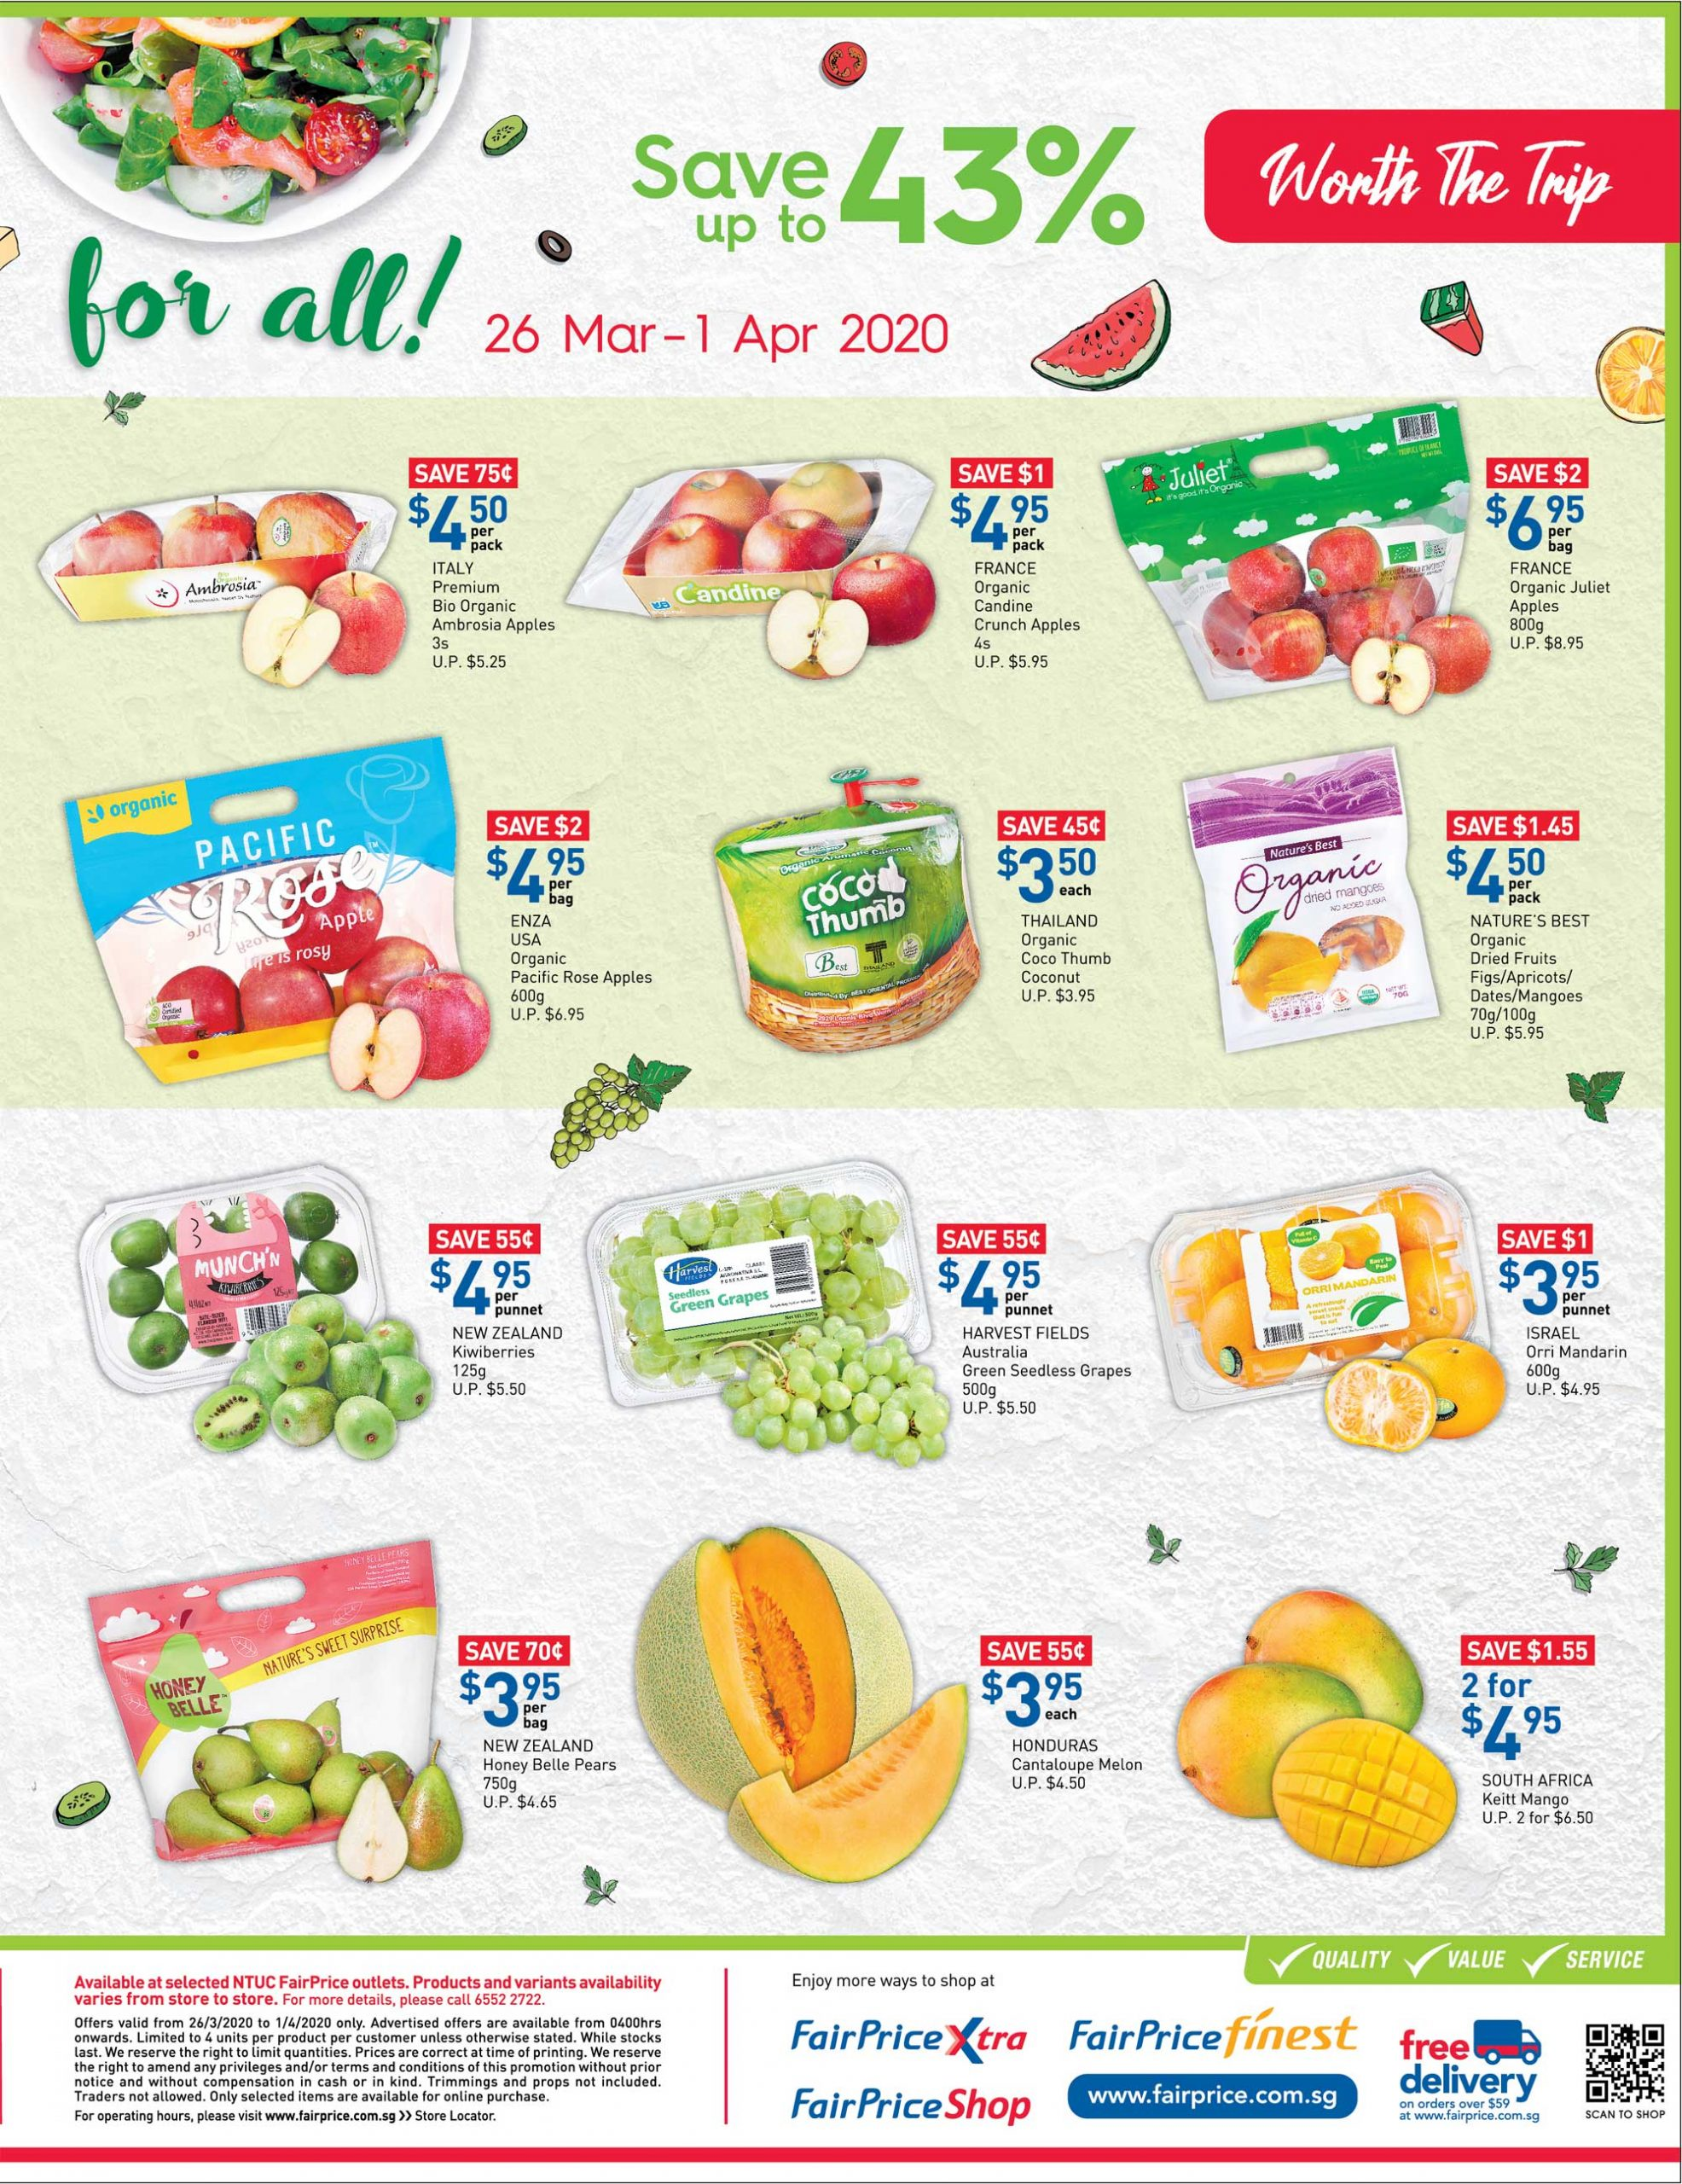 NTUC FairPrice SG Your Weekly Saver Promotion 26 Mar - 1 Apr 2020 | Why Not Deals 4 & Promotions